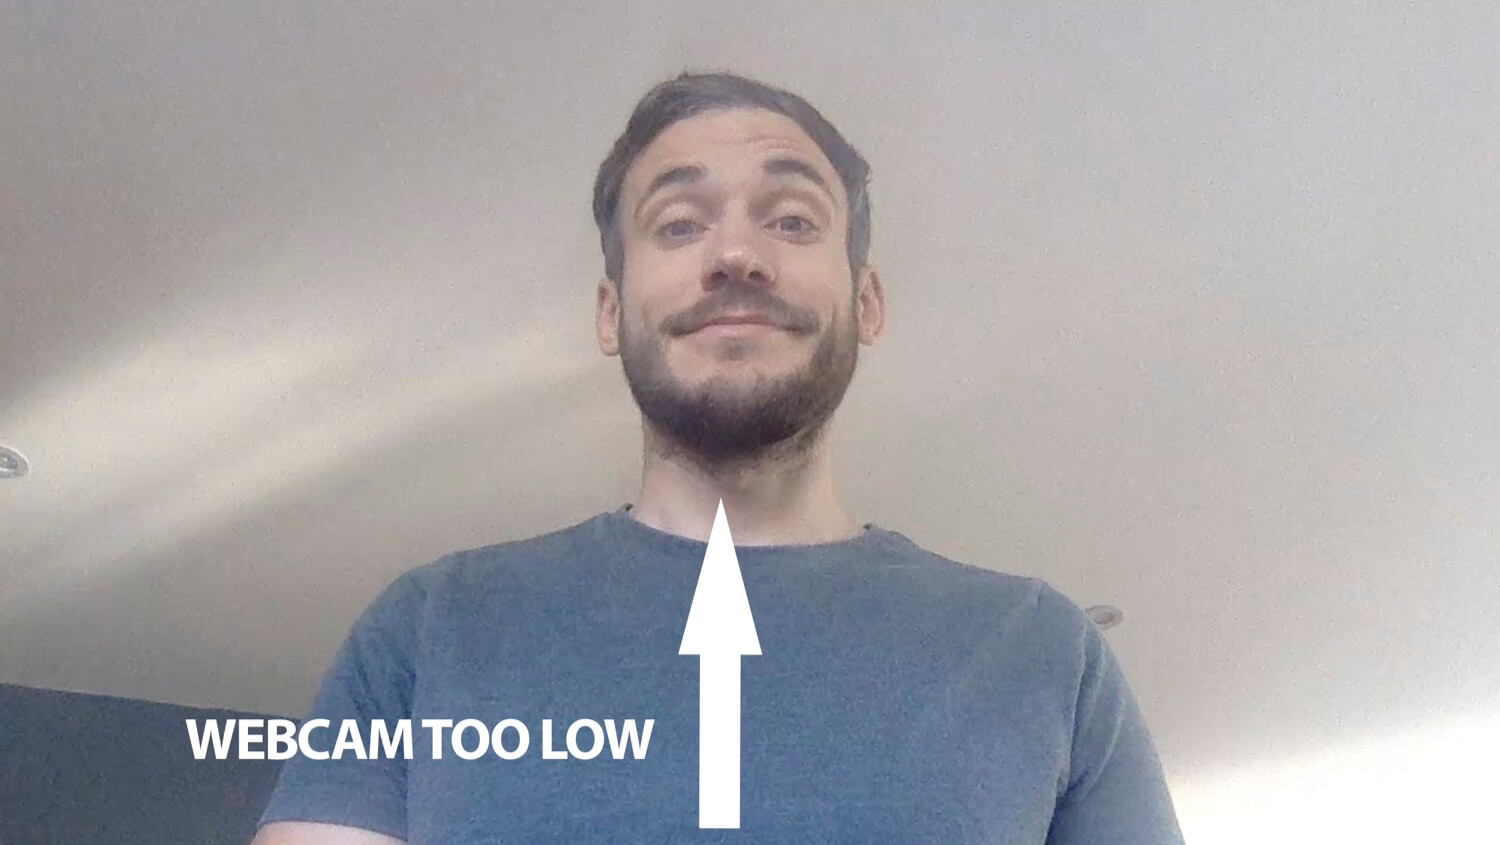 the effect of a webcam positioned too low